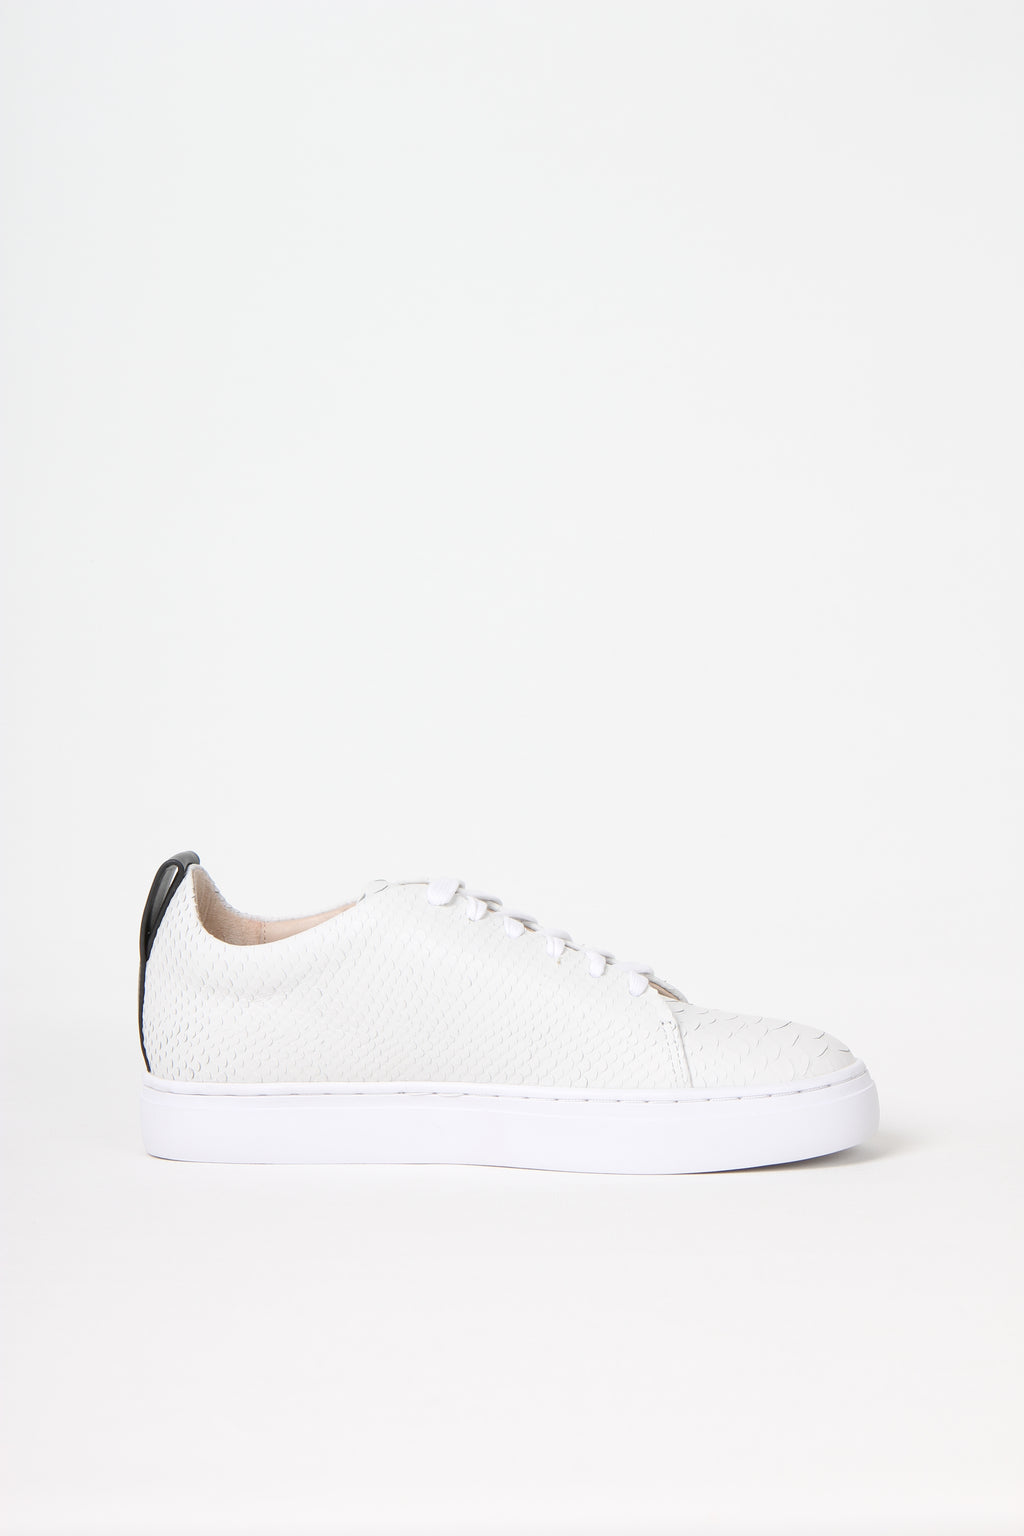 Premium lace up sneakers in off-white snake embossed calf leather from Swedish shoe brand ANNY NORD.